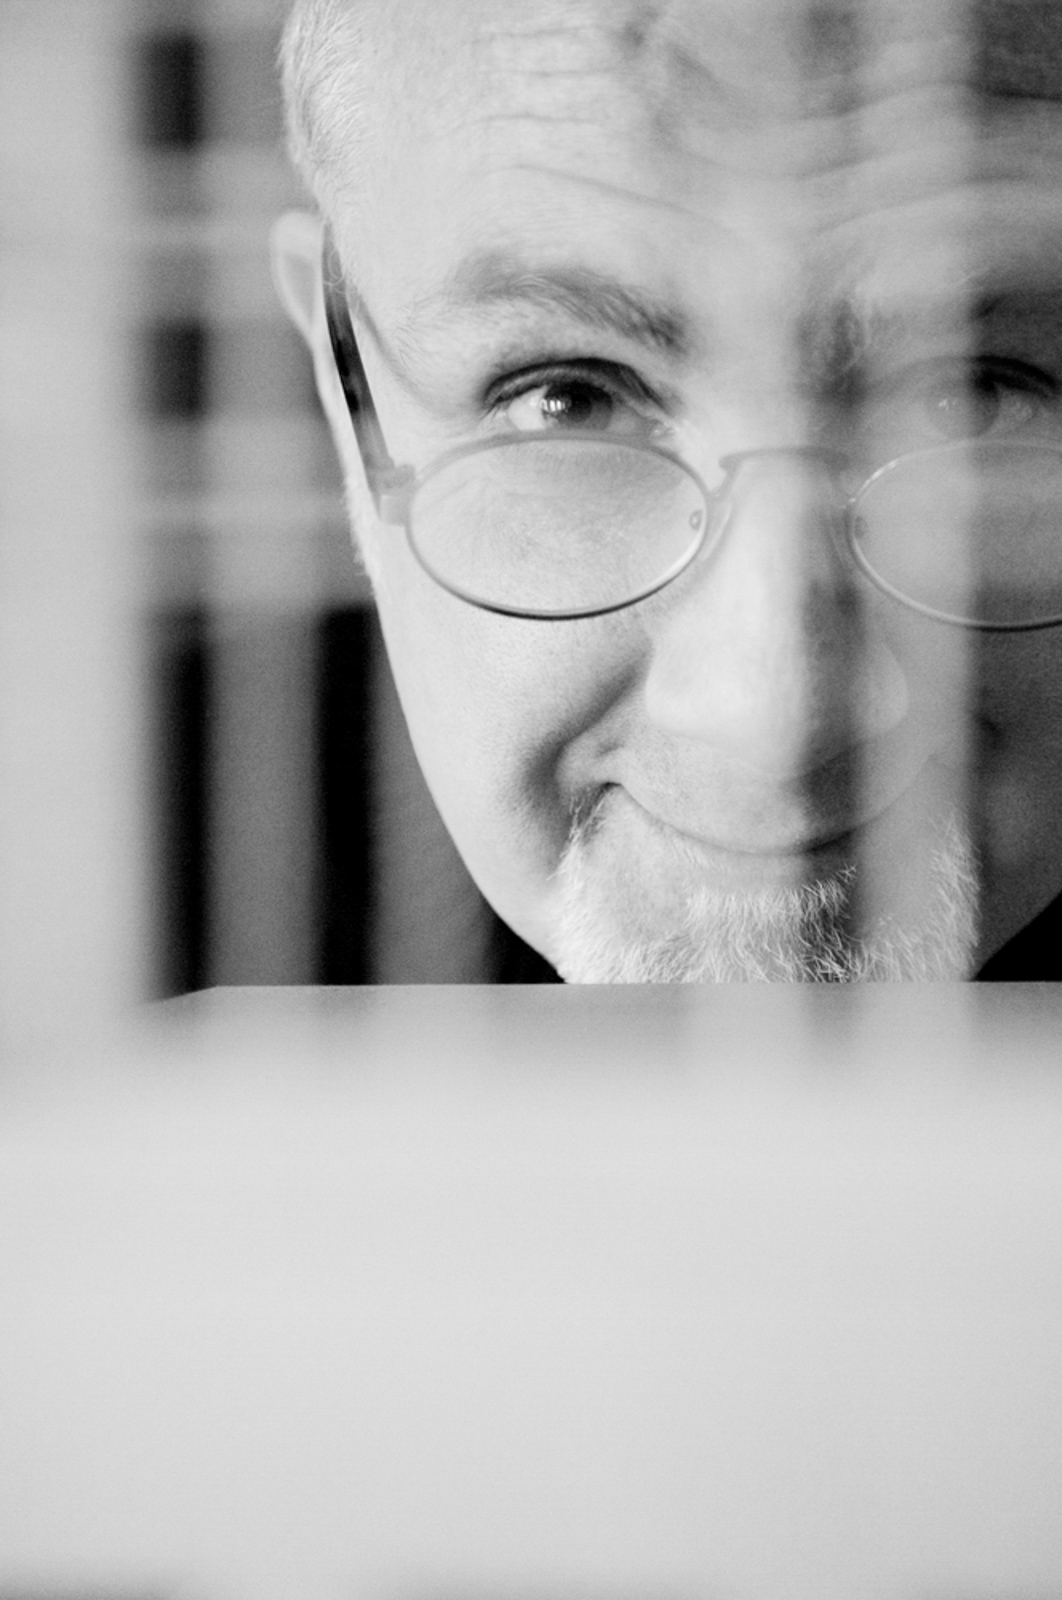 Close up of man wearing glasses, looking through a patterned element